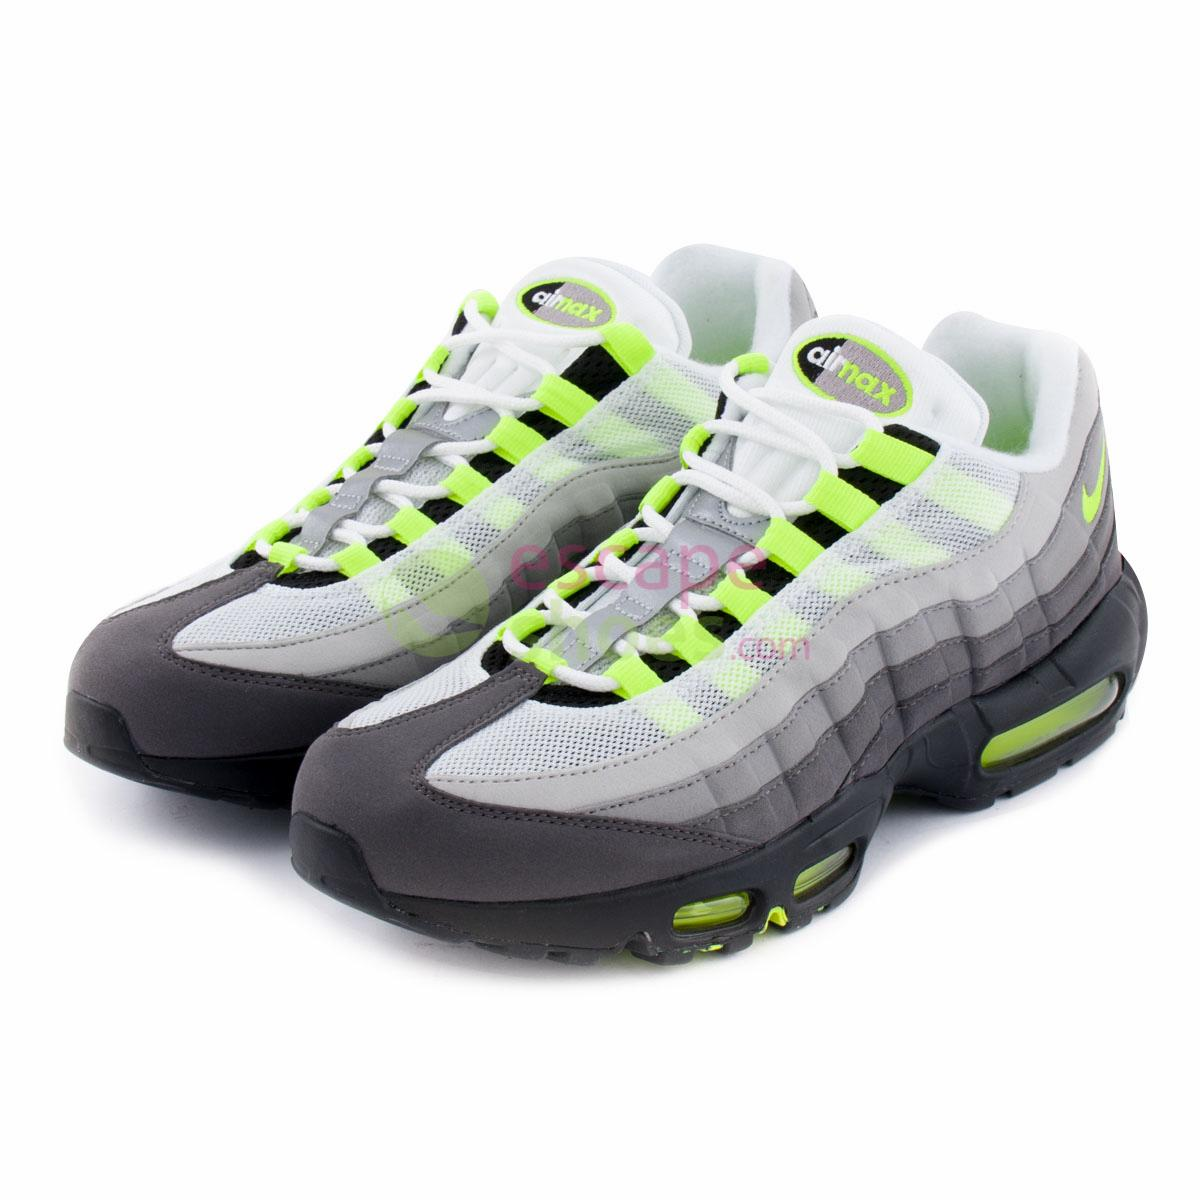 32c5d8e1f5 Buy your Sneakers NIKE Air Max 95 Og Black Volt Ash Pewter 554970 ...